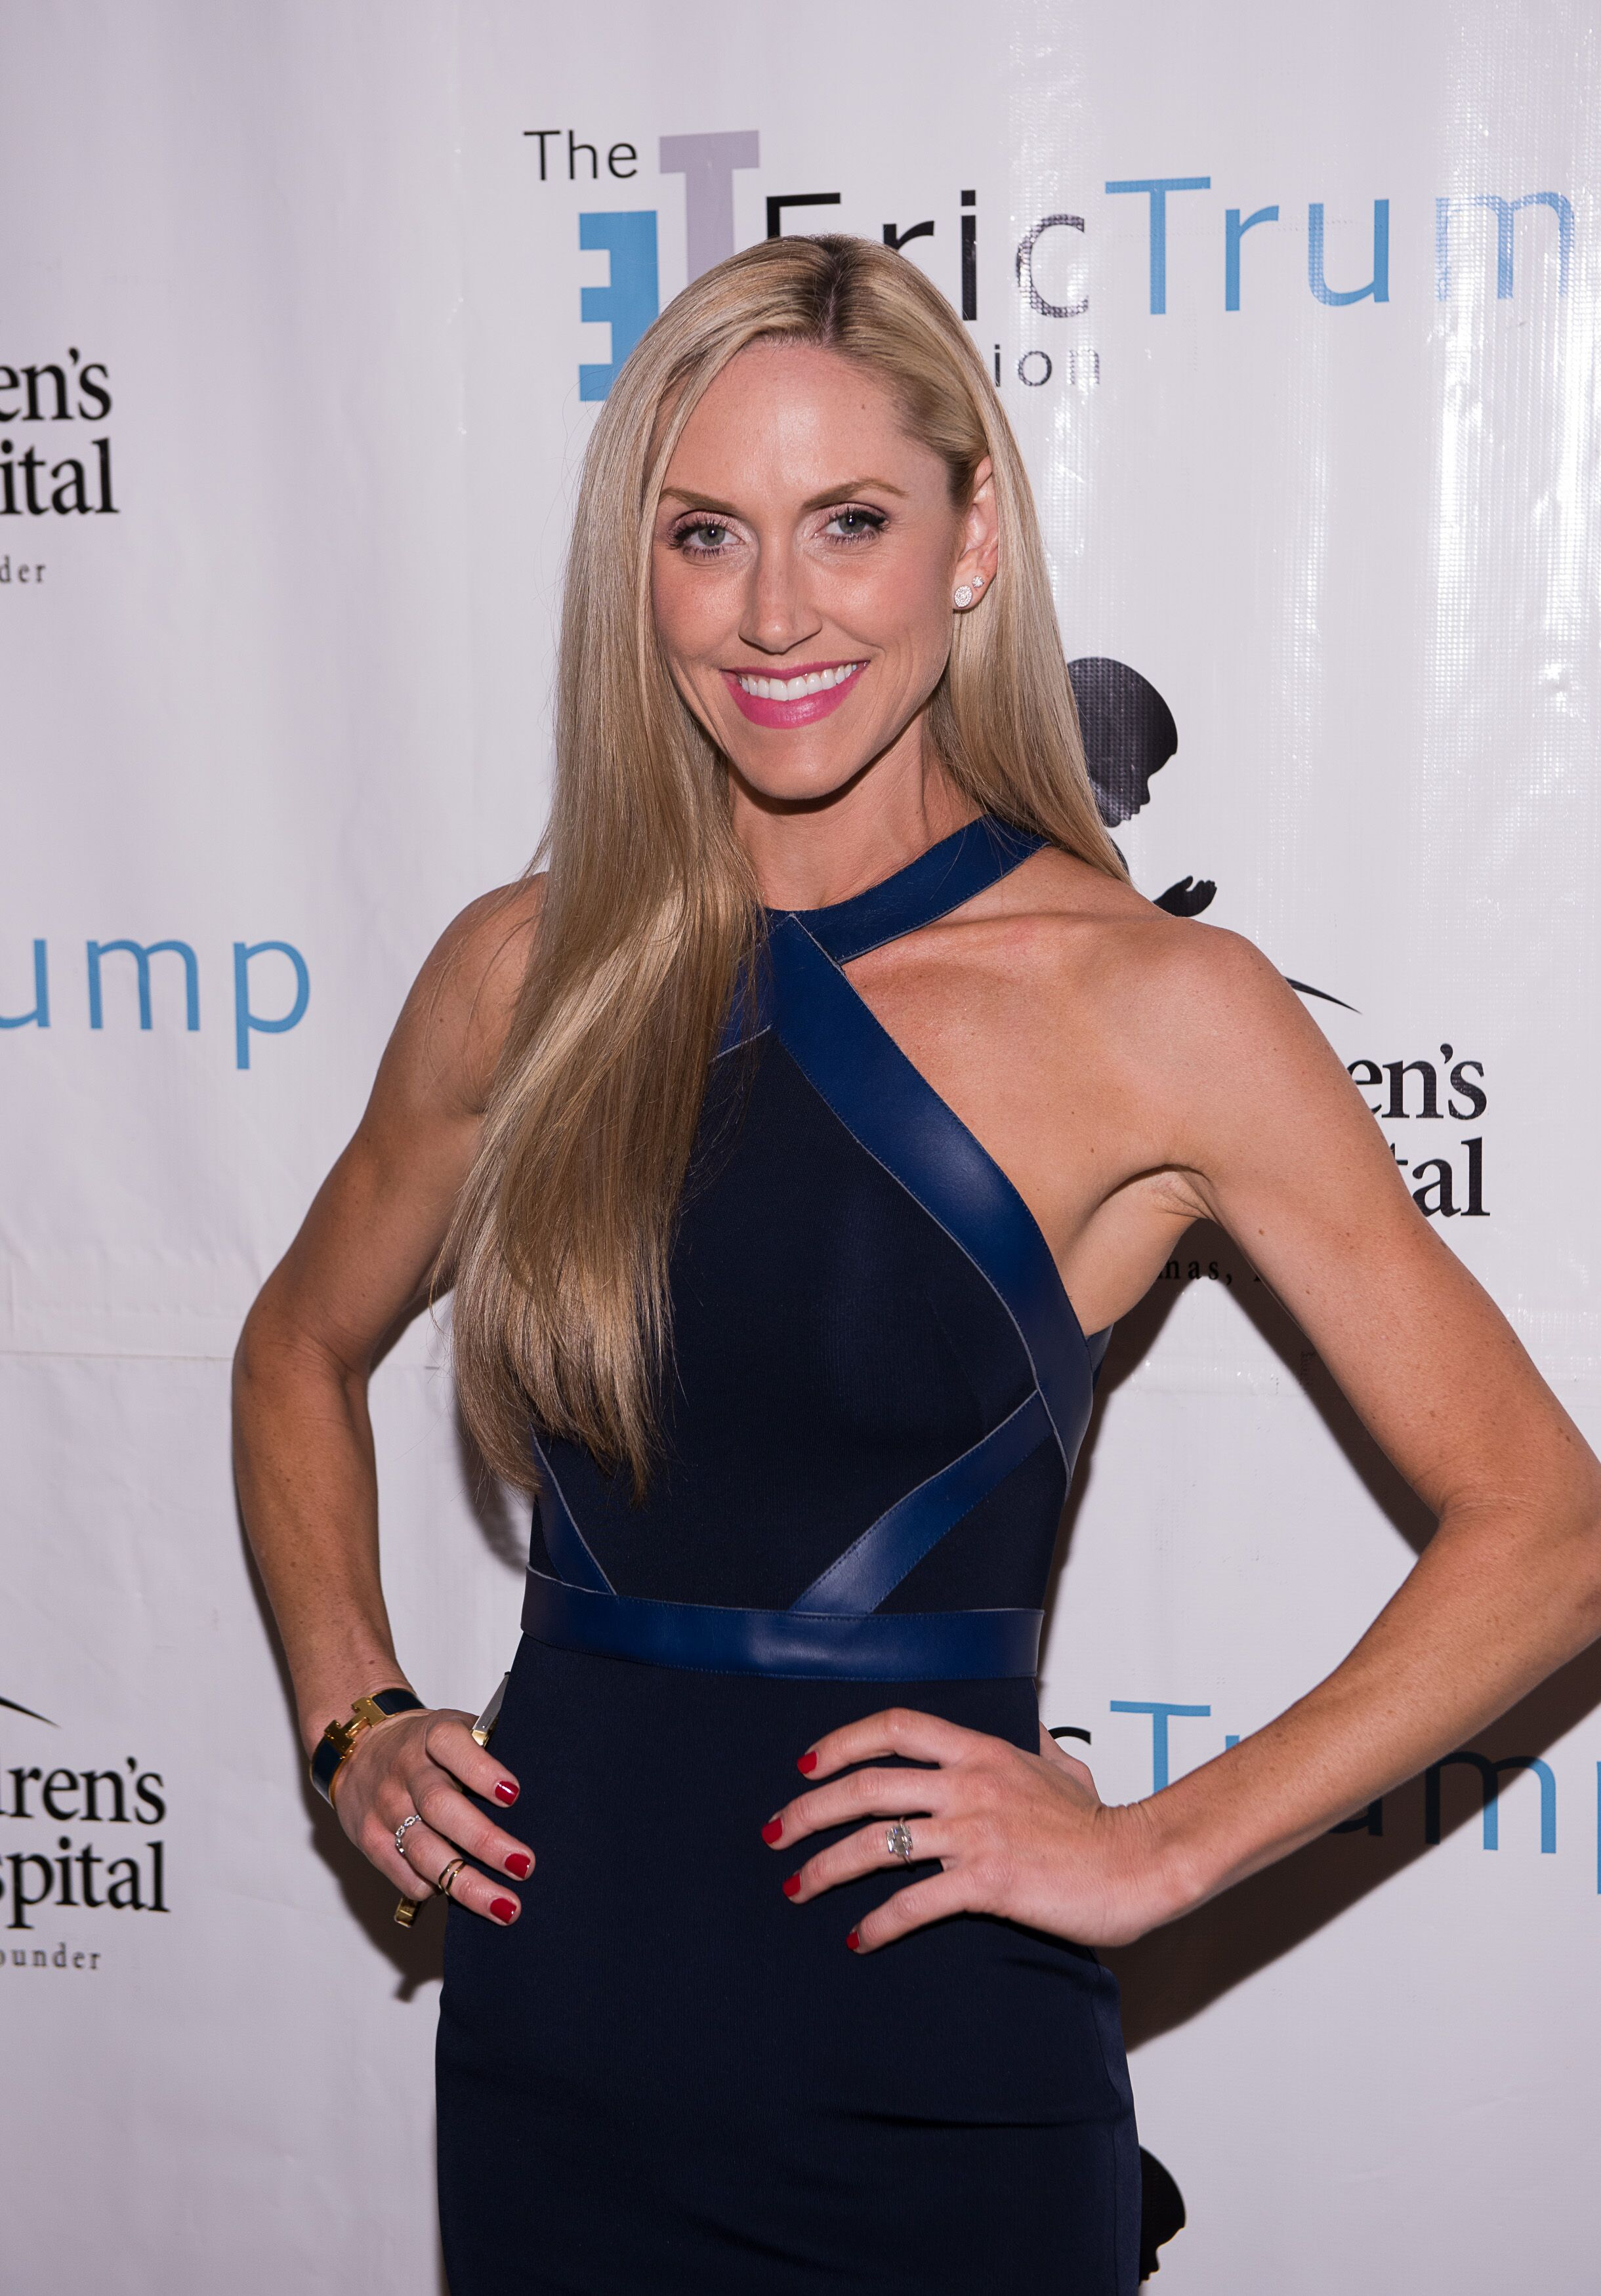 Lara Yunaska attends The Eric Trump 8th Annual Golf Tournament at Trump National Golf Club Westchester on September 15, 2014 in Briarcliff Manor, New York | Photo: Getty Images